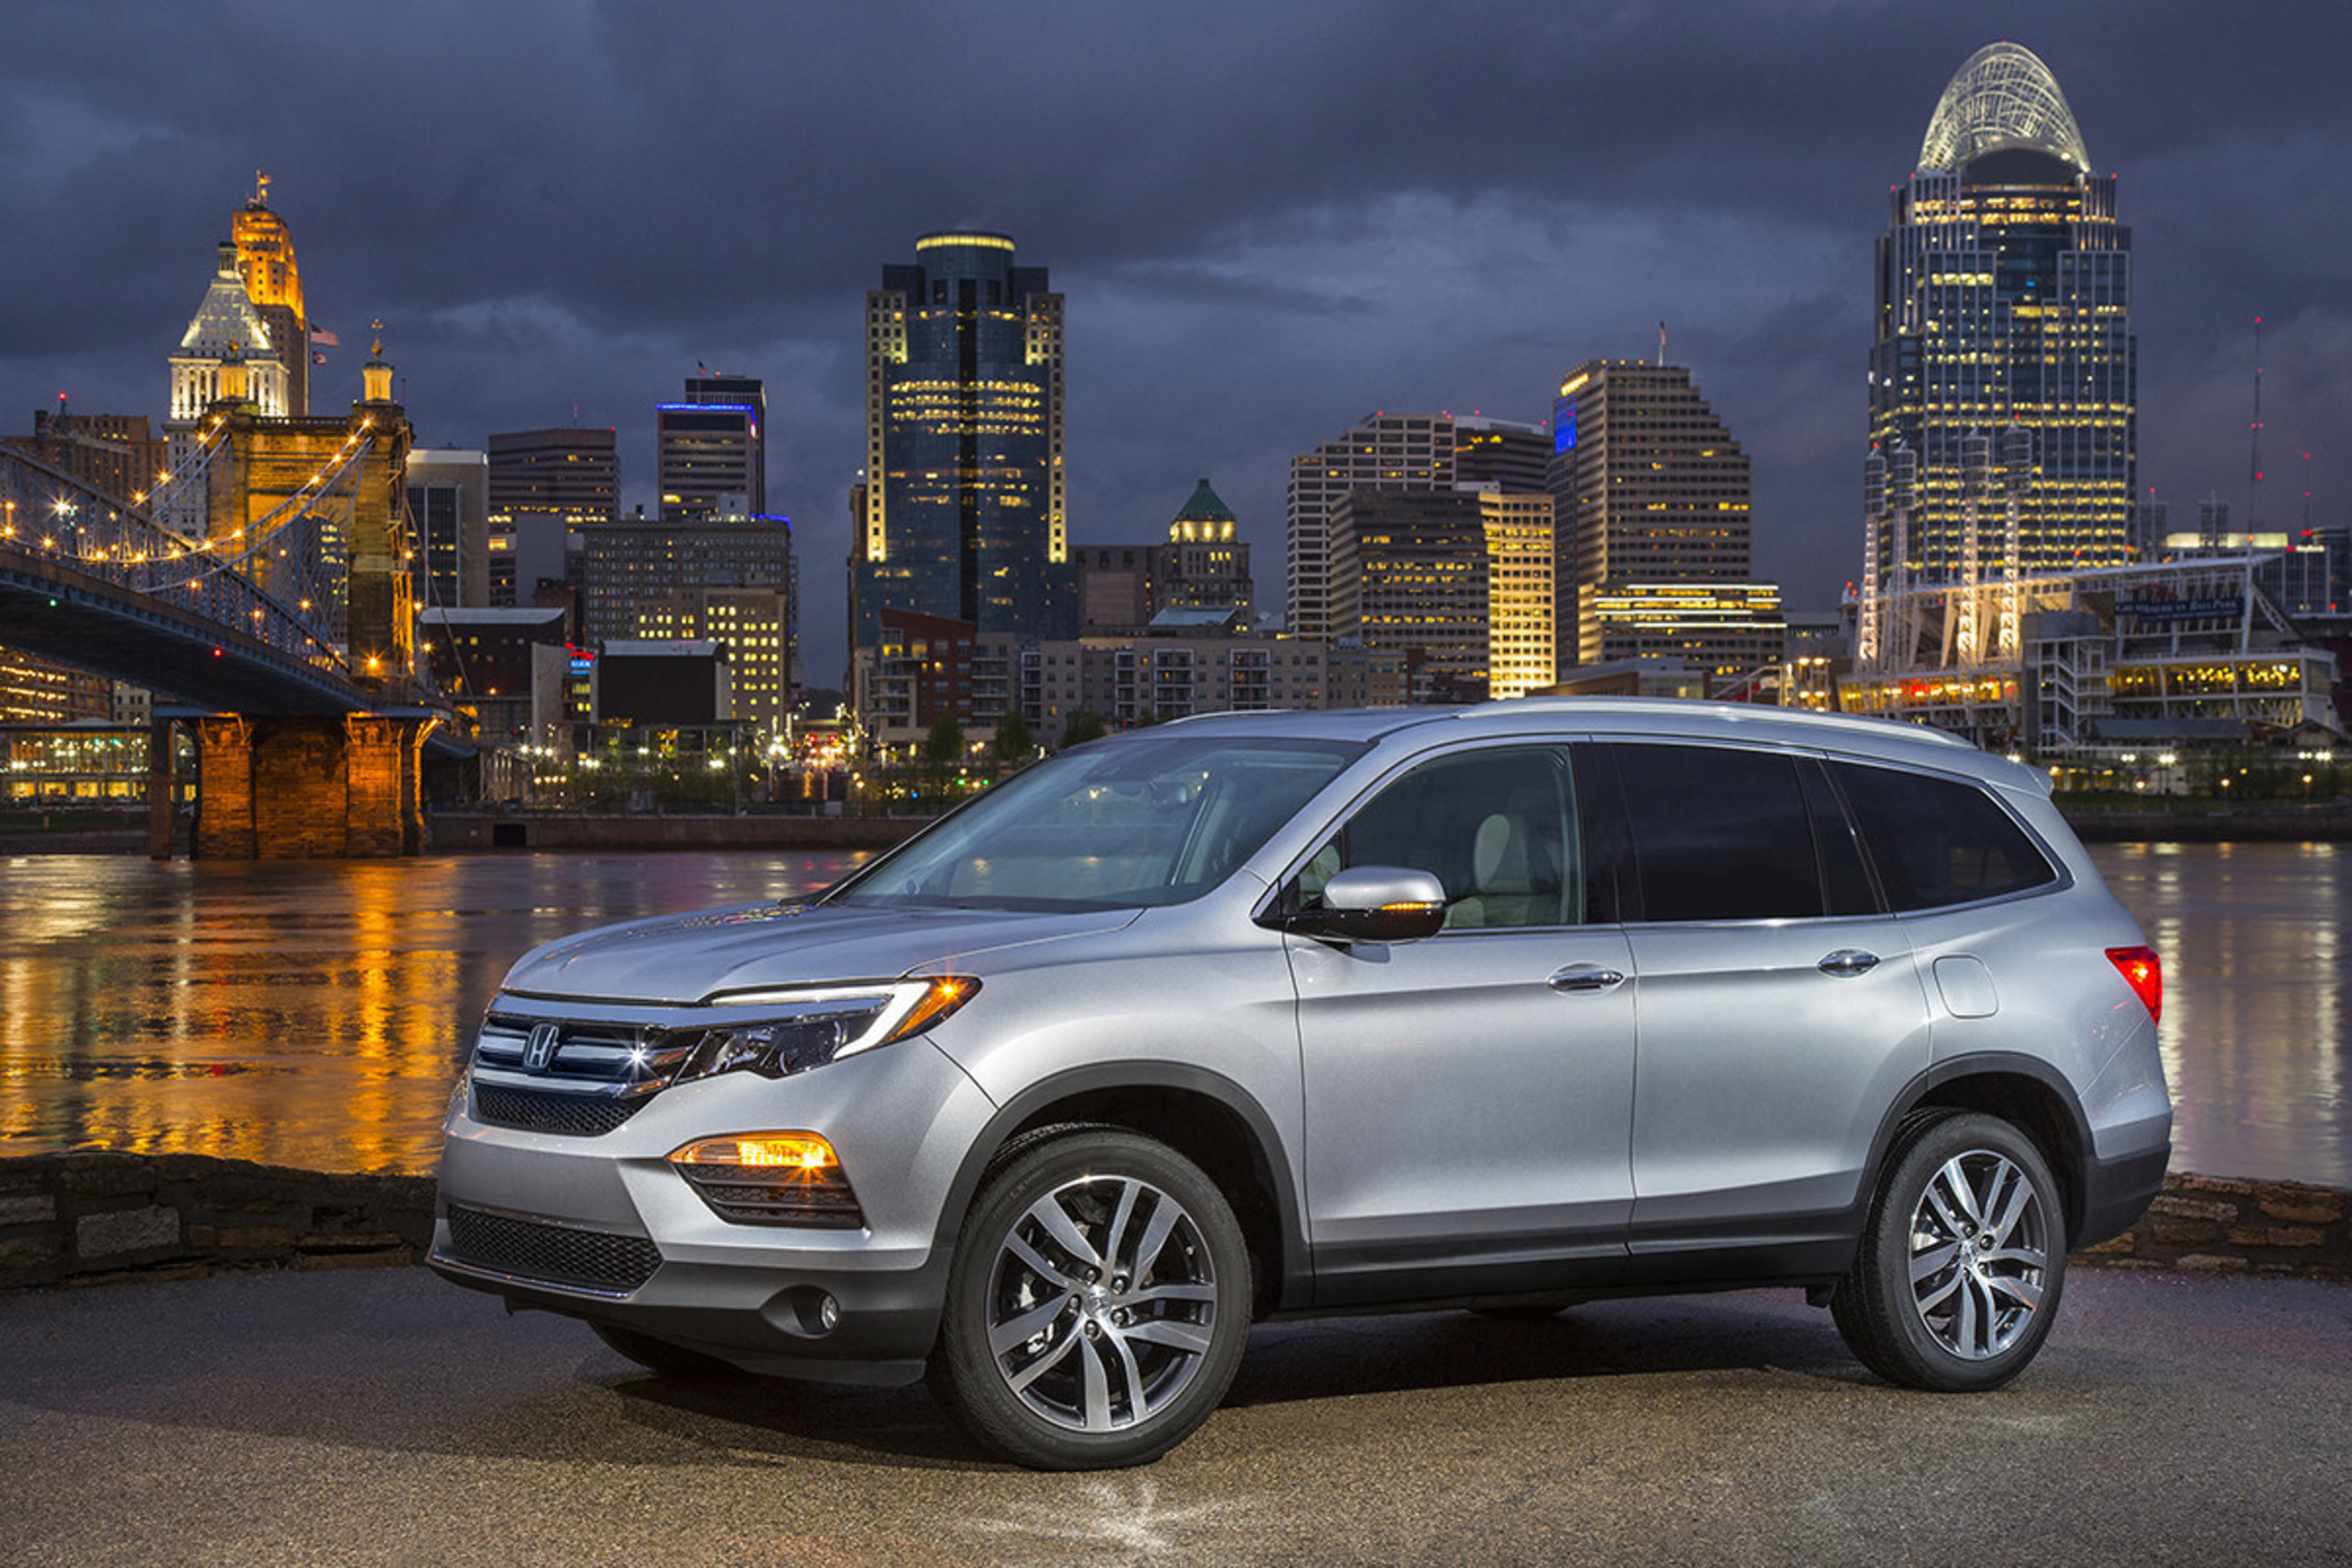 All New 2016 Honda Pilot The Fully Redesigned Three Row Suv Sets Benchmark With